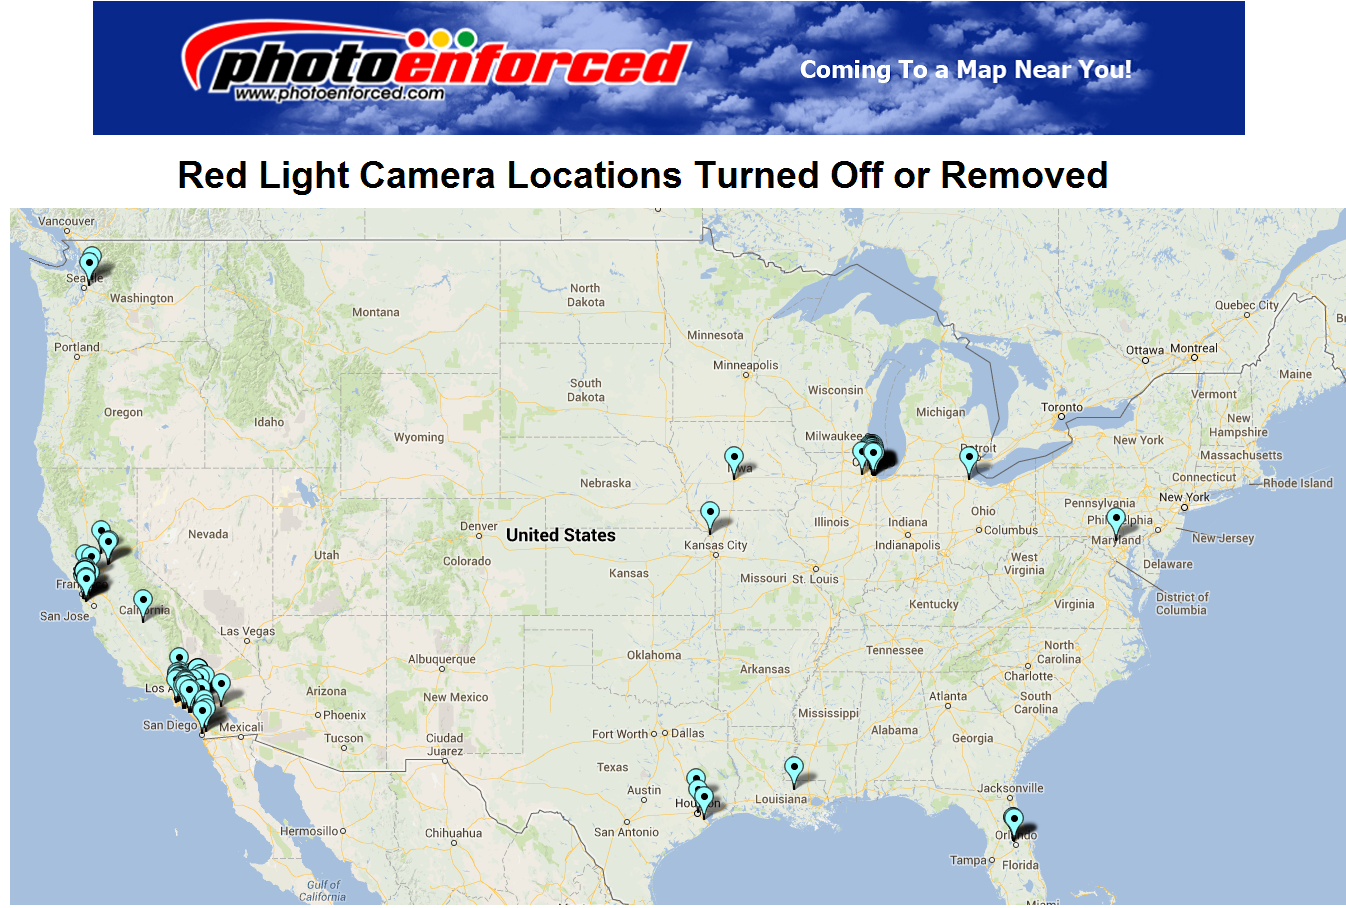 Map Of Cities That Have Removed Red Light Camera Locations